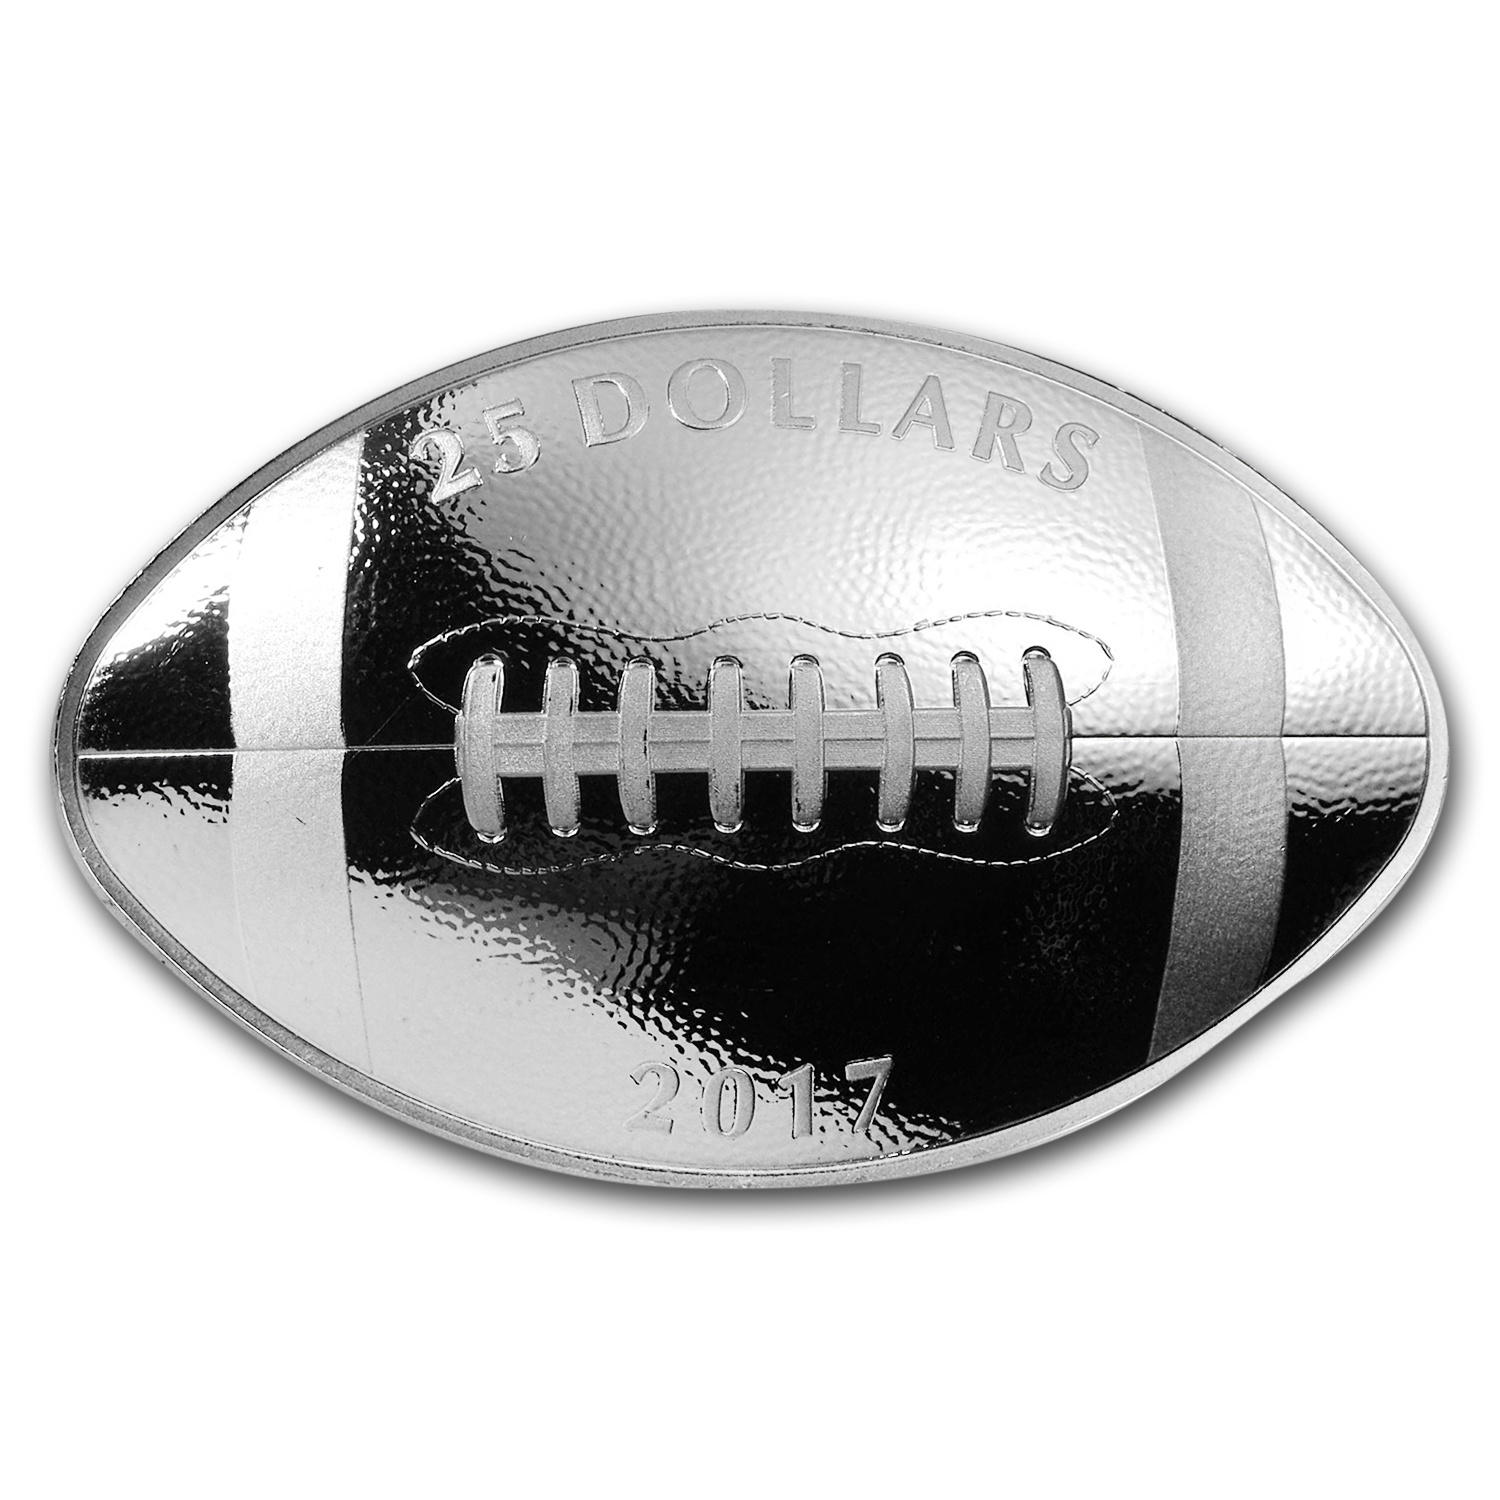 2017 Canada 1 oz Proof Silver $25 Football-Shaped Coin